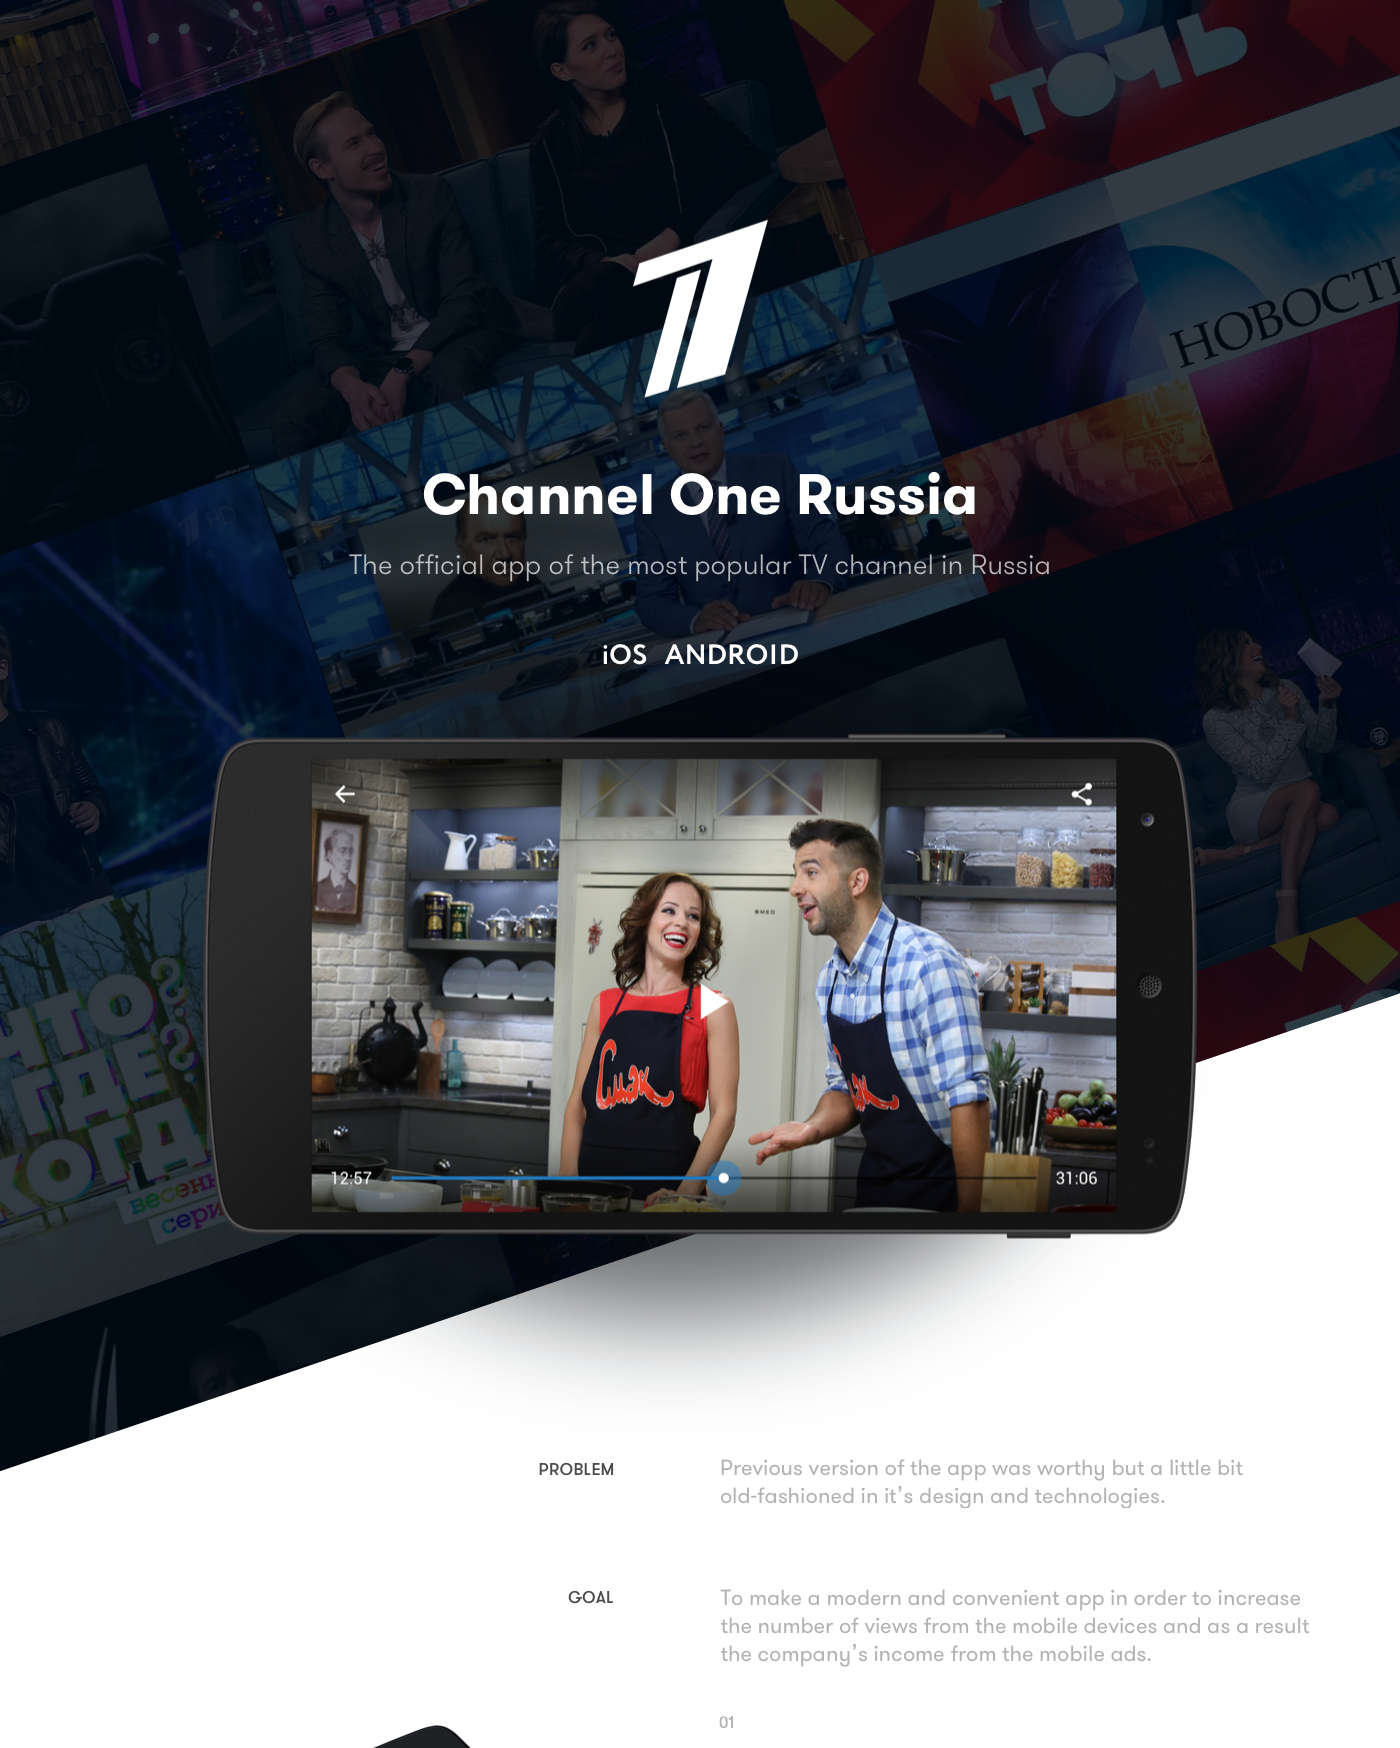 ios android app mobile material tv media animation  Russia broadcast